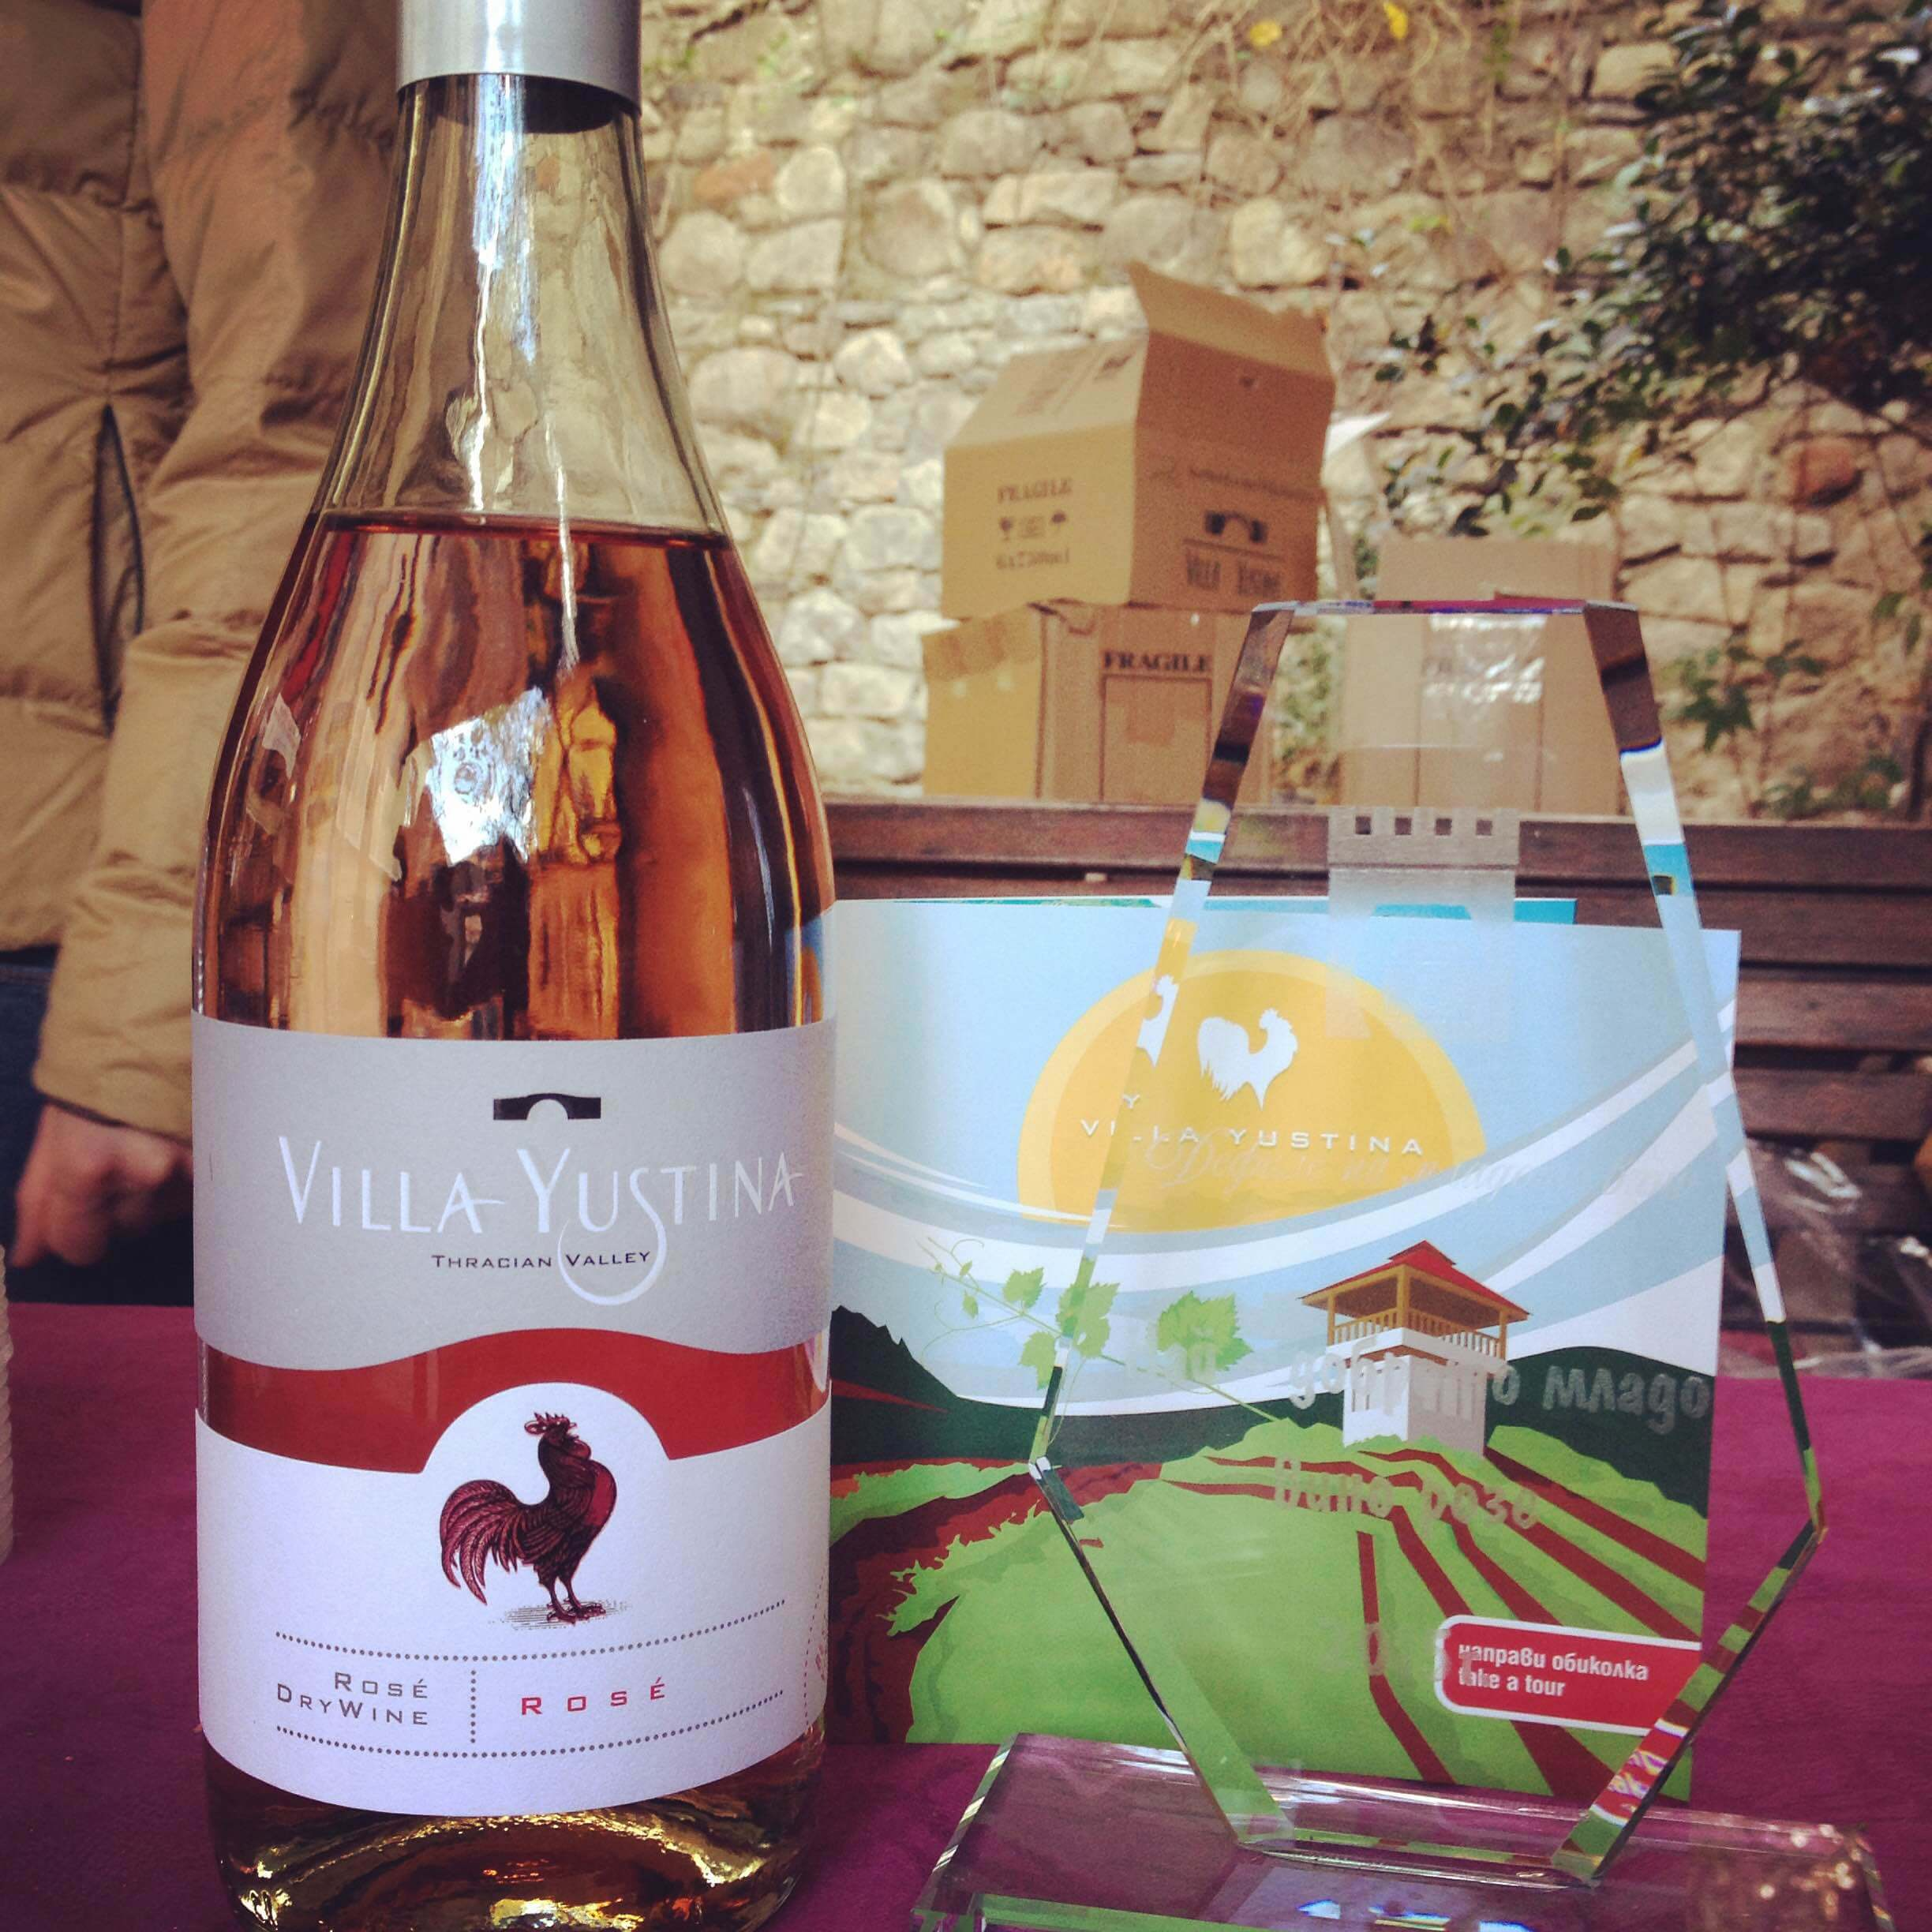 The best young rosé of the Young Wine Parade 2015 - Villa Yustina